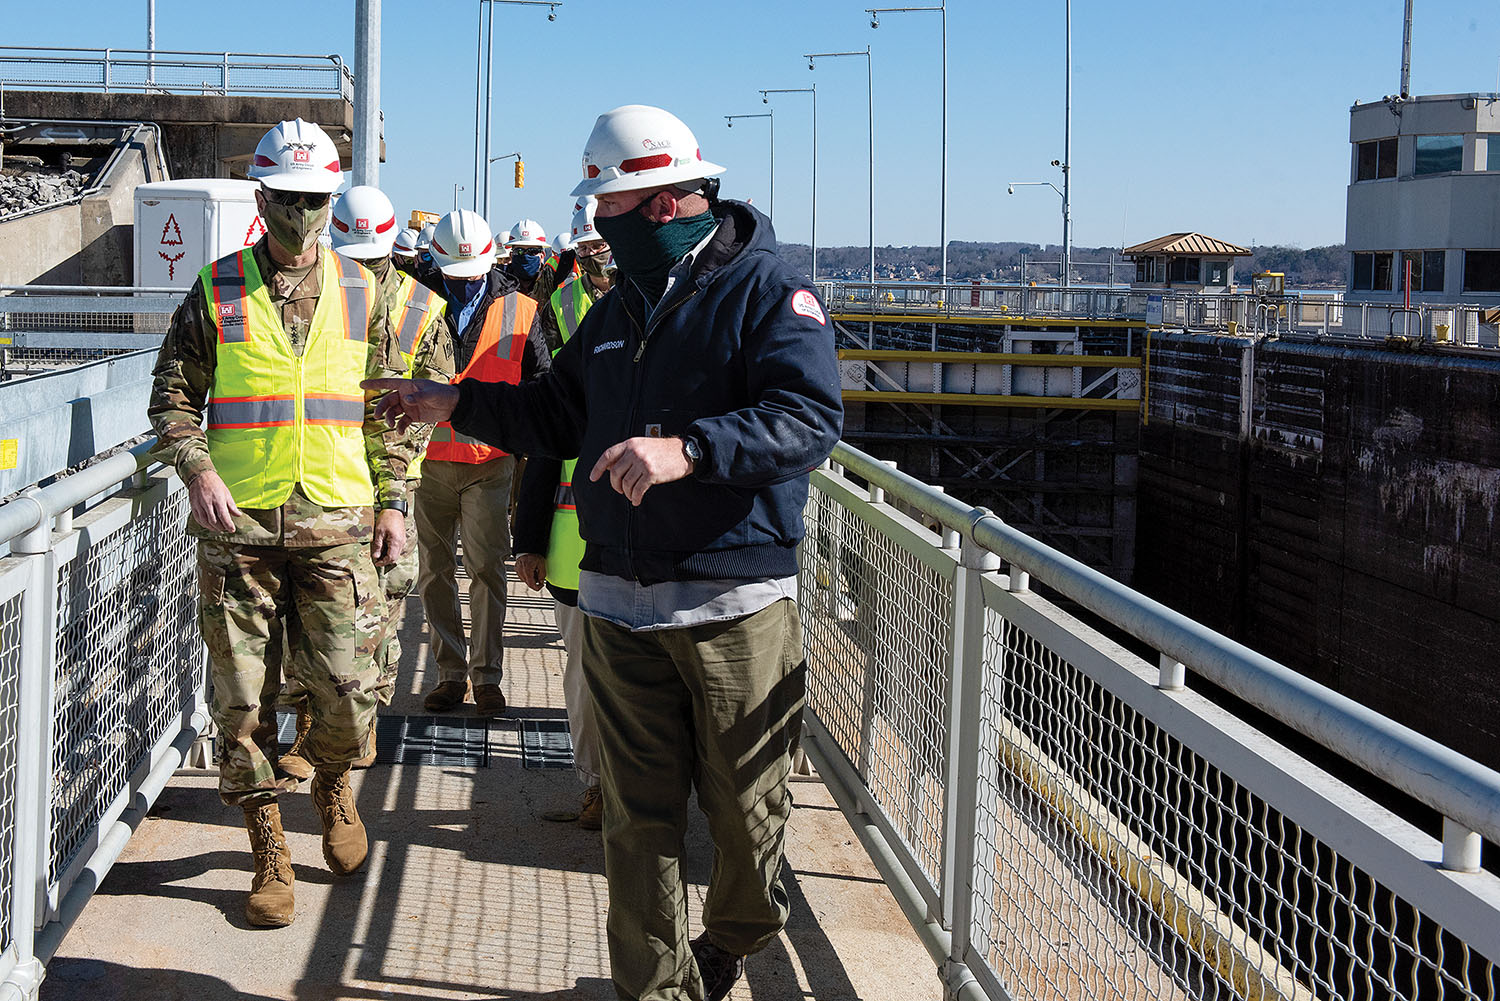 Cory Richardson, Chickamauga lockmaster, leads Lt. Gen. Scott Spellmon, 55th chief of engineers, on a tour of Chickamauga Lock on the Tennessee River on February 3. The lock has experienced structural problems and is not large enough to accommodate modern tow sizes, resulting in longer than normal tow-processing times. The Corps is building a larger replacement lock at the Tennessee Valley Authority project. (photo by Lee Roberts/Nashville Engineer District)